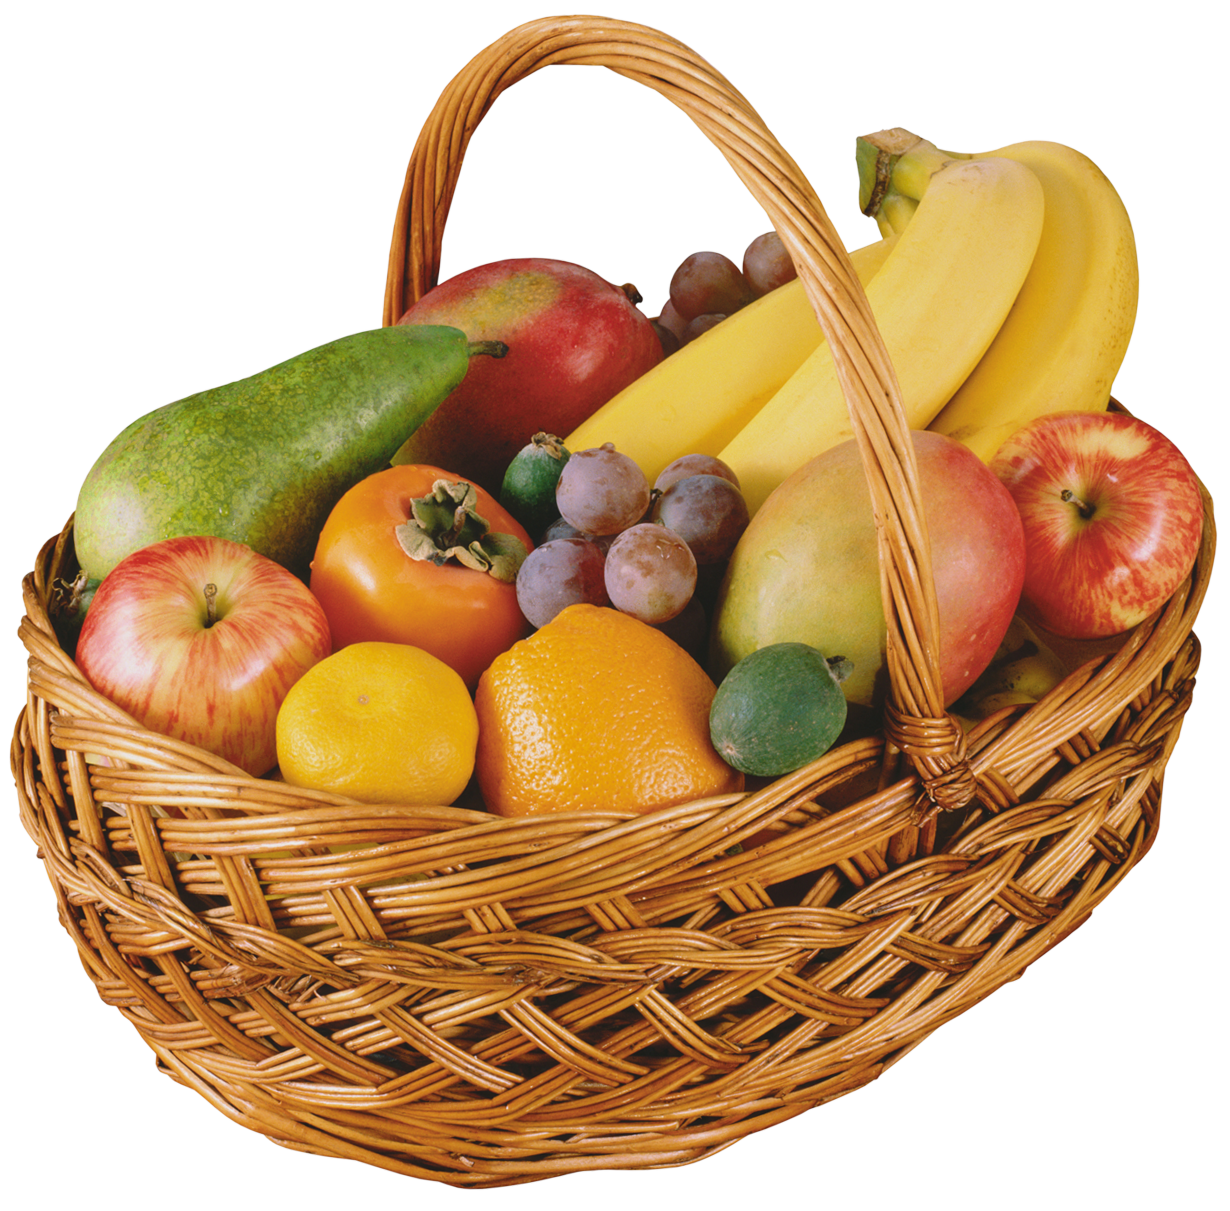 Fruitbasket clipart clip royalty free stock Fruit Basket PNG Clipart - Best WEB Clipart clip royalty free stock